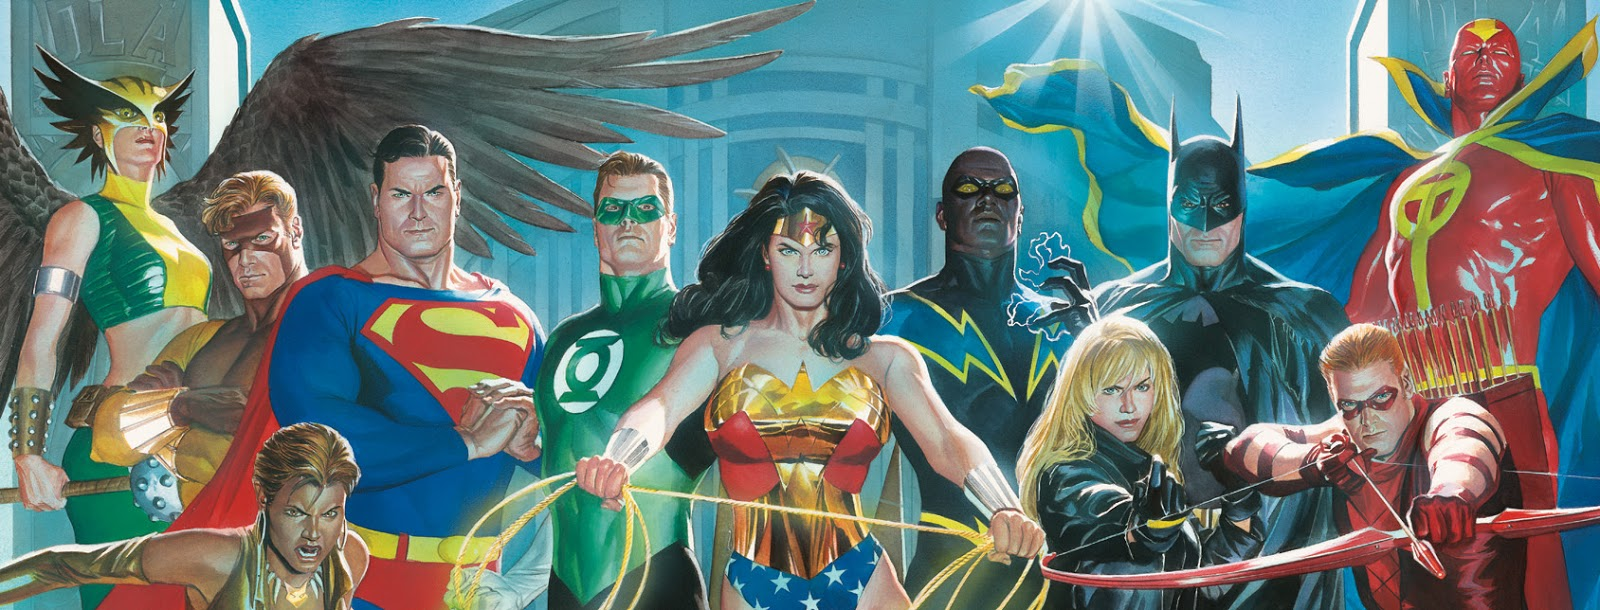 Justice League Dc Comics Superheroes Wallpapers: The Good The Bad And The Insulting: July 2013